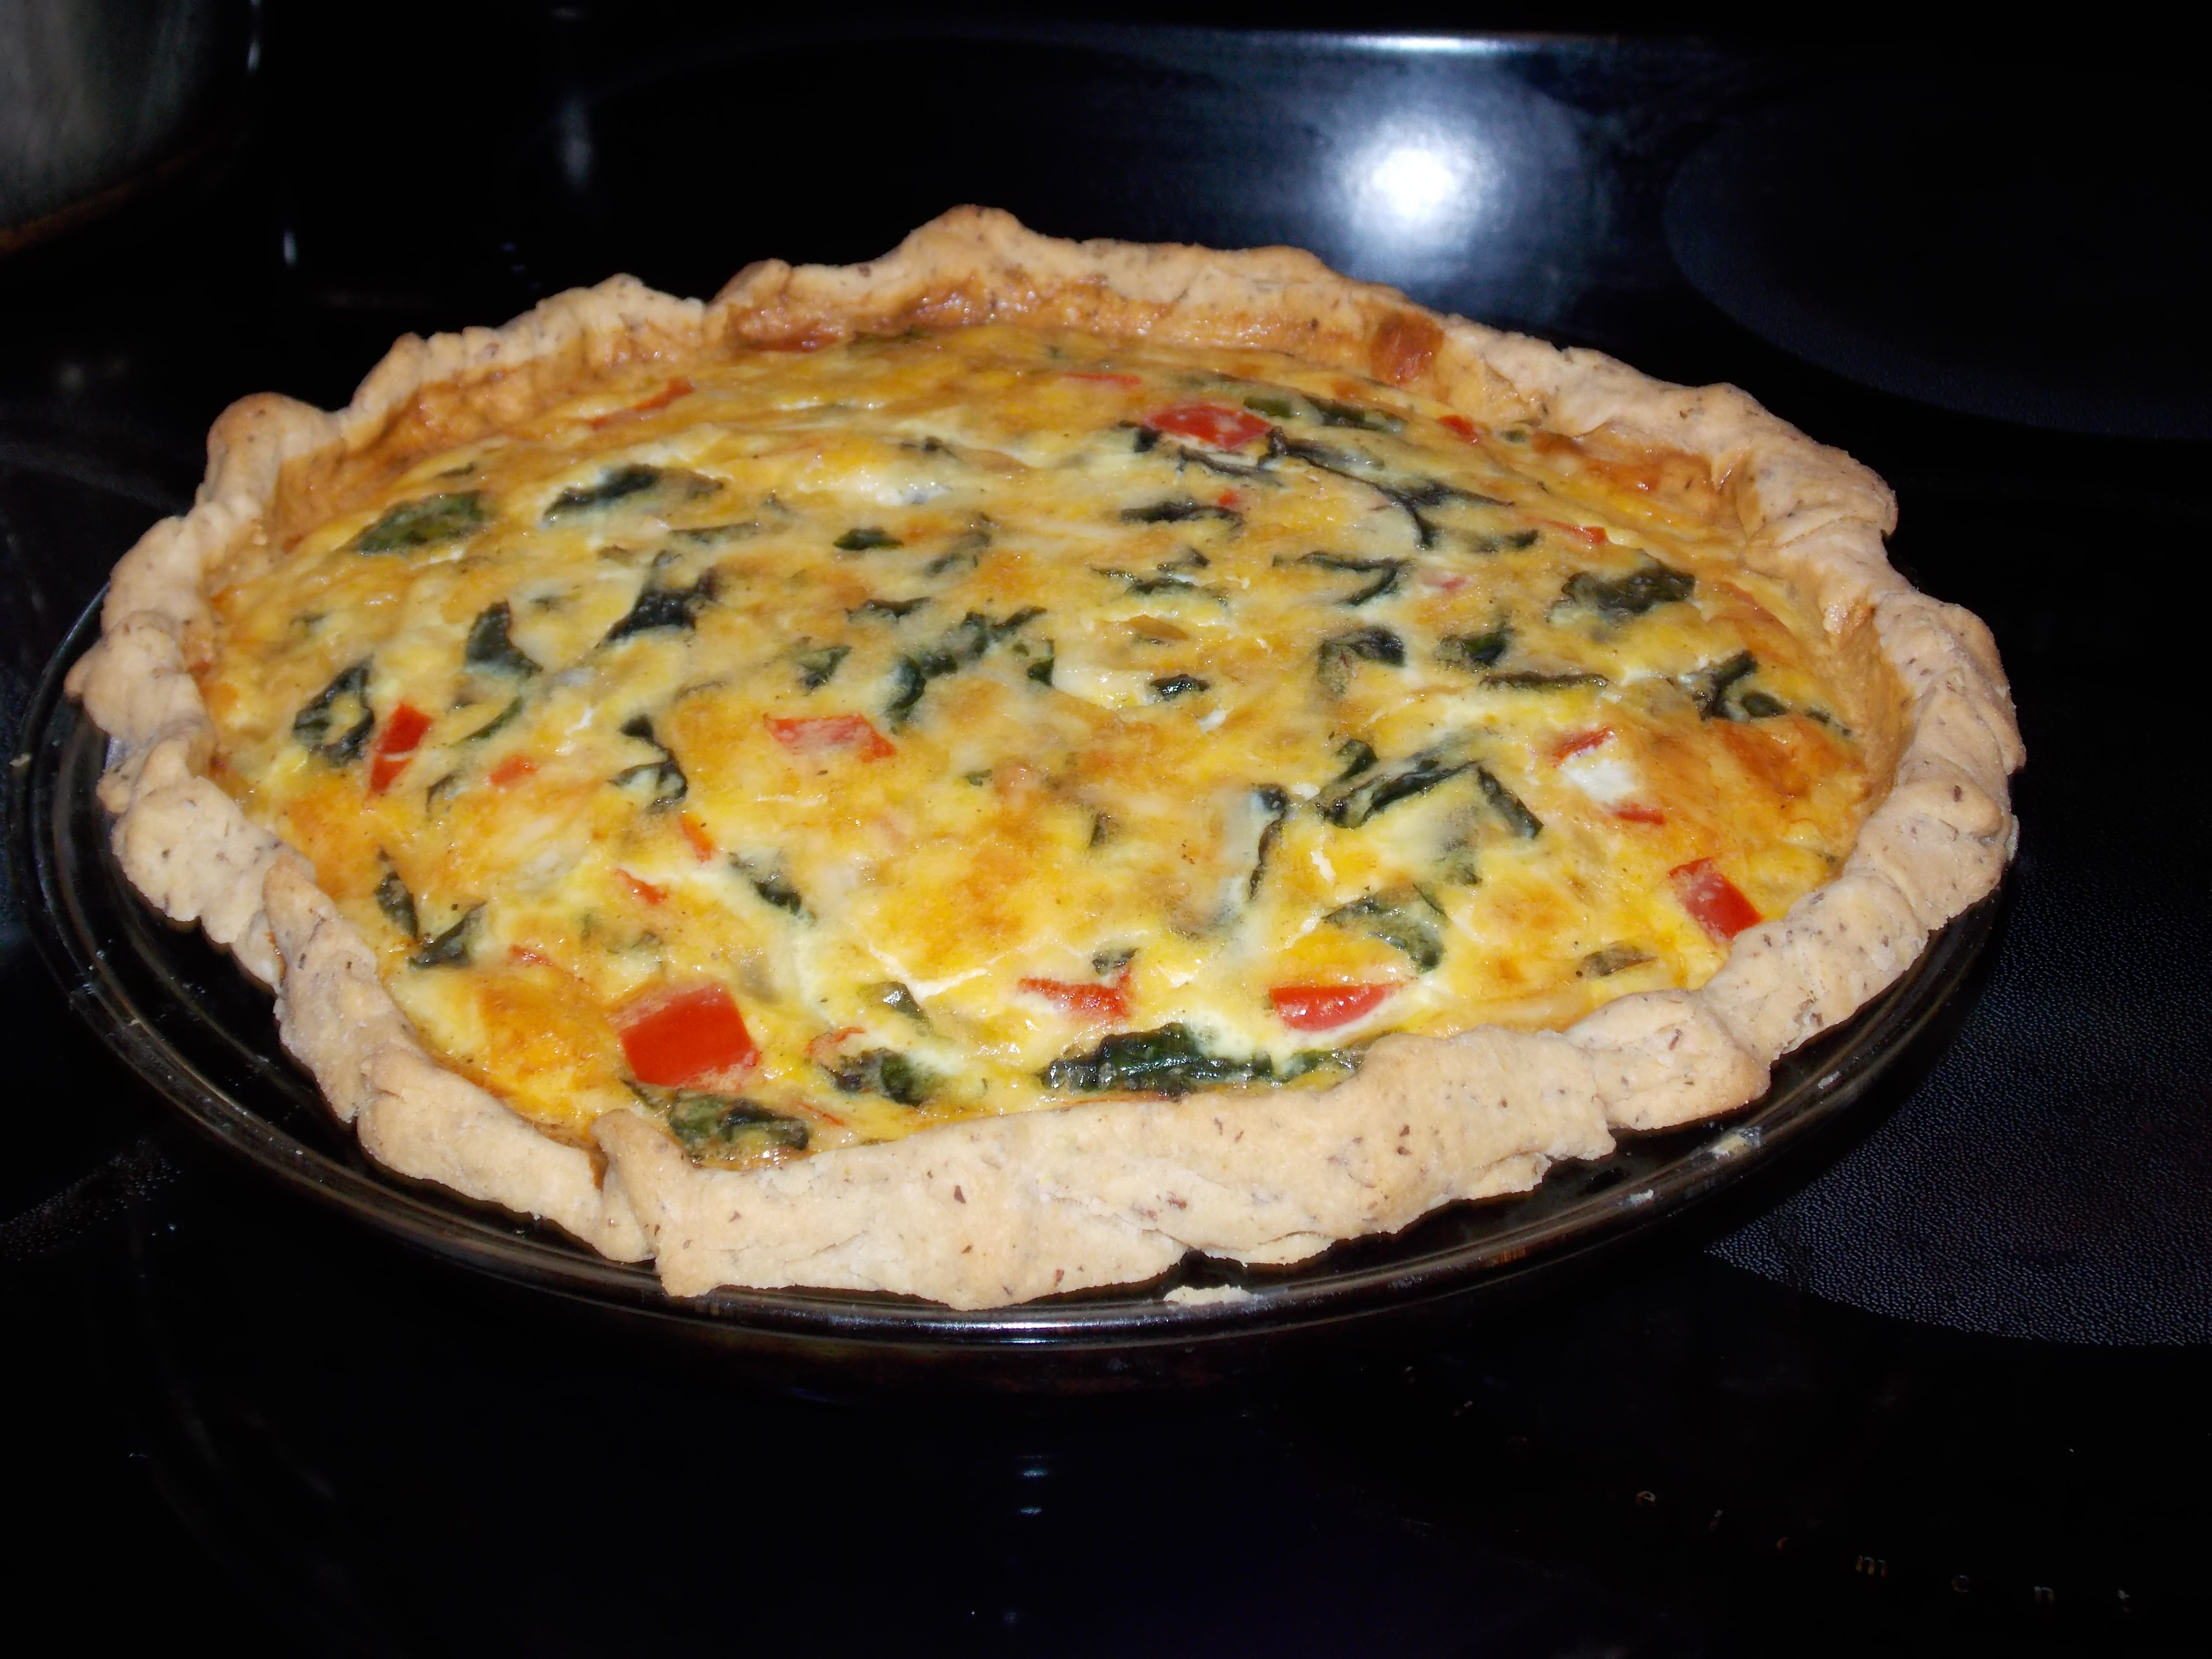 Finally a gluten free pie crust that really works for Quiche not setting